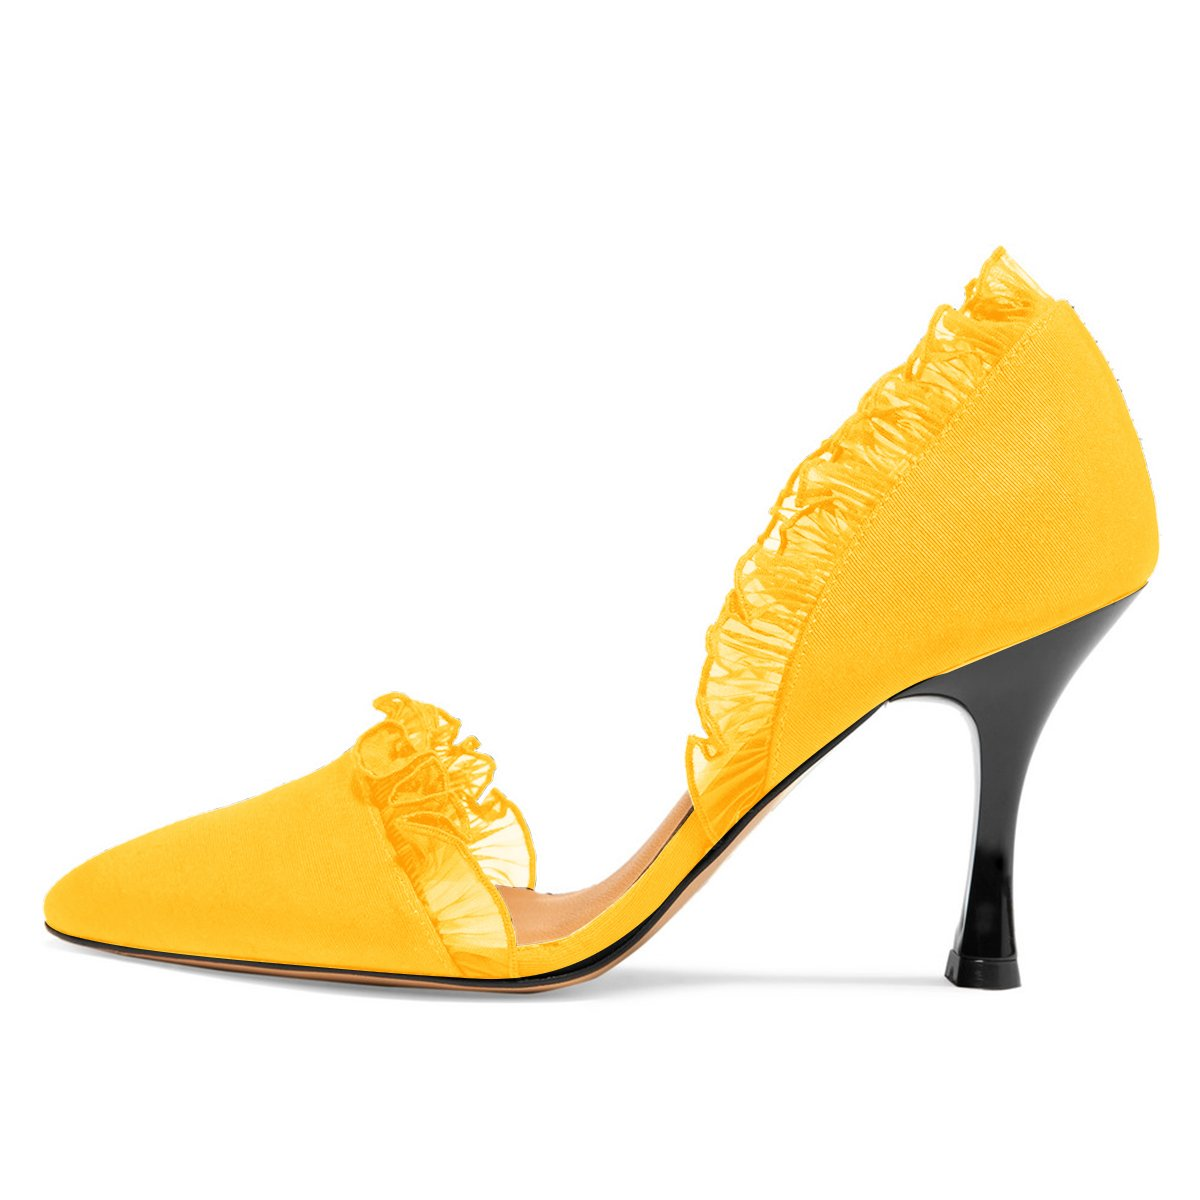 XYD Women Lace D'Orsay High Pumps Pointed Toe Stiletto High D'Orsay Heels Slip on Dress Wedding Bridal Shoes B07BHJZYYJ 10 B(M) US|Yellow 197764